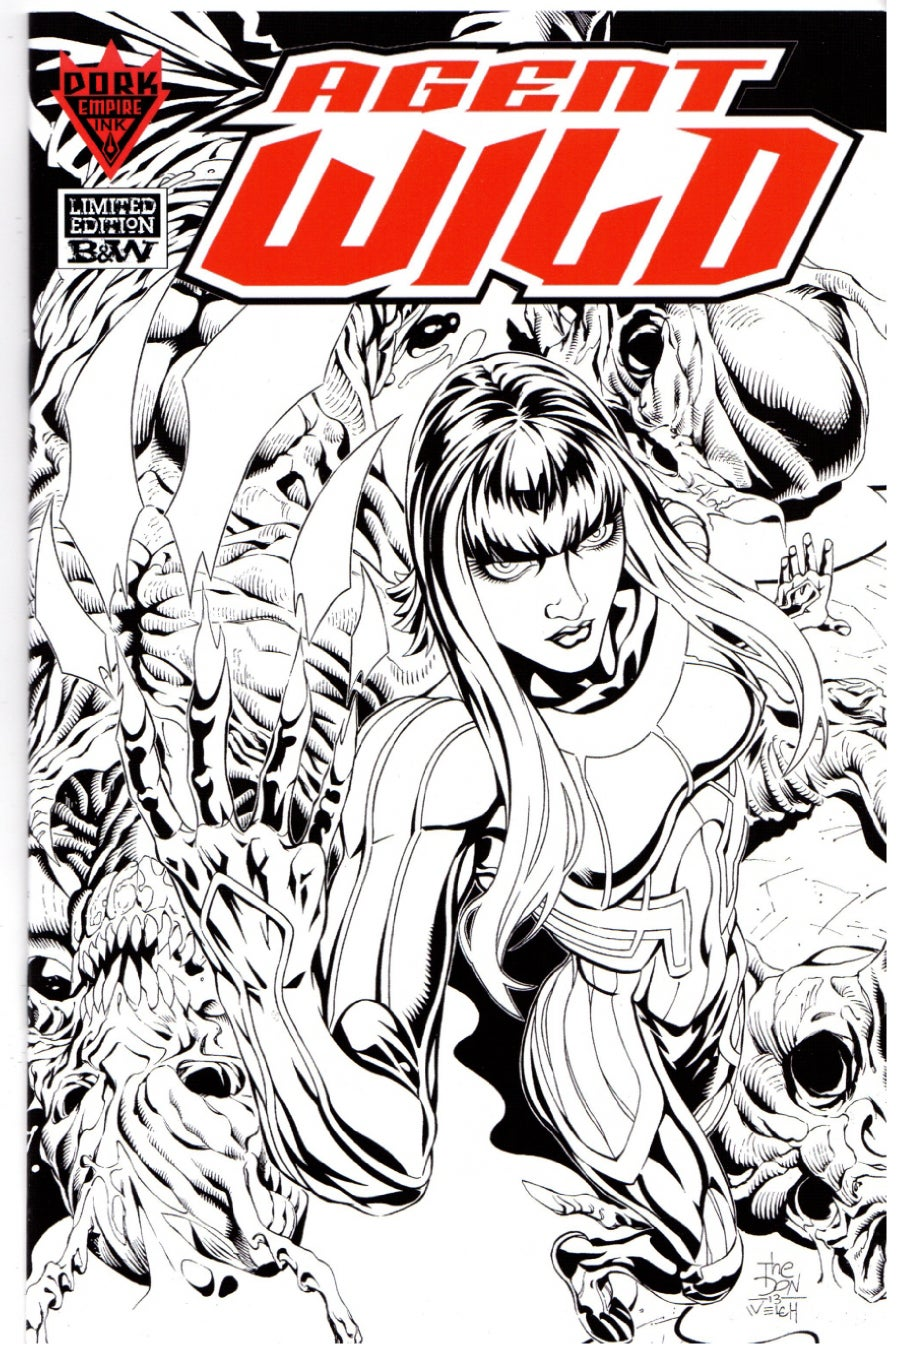 Image of AGENT WILD #0 / Limited Edition B&W